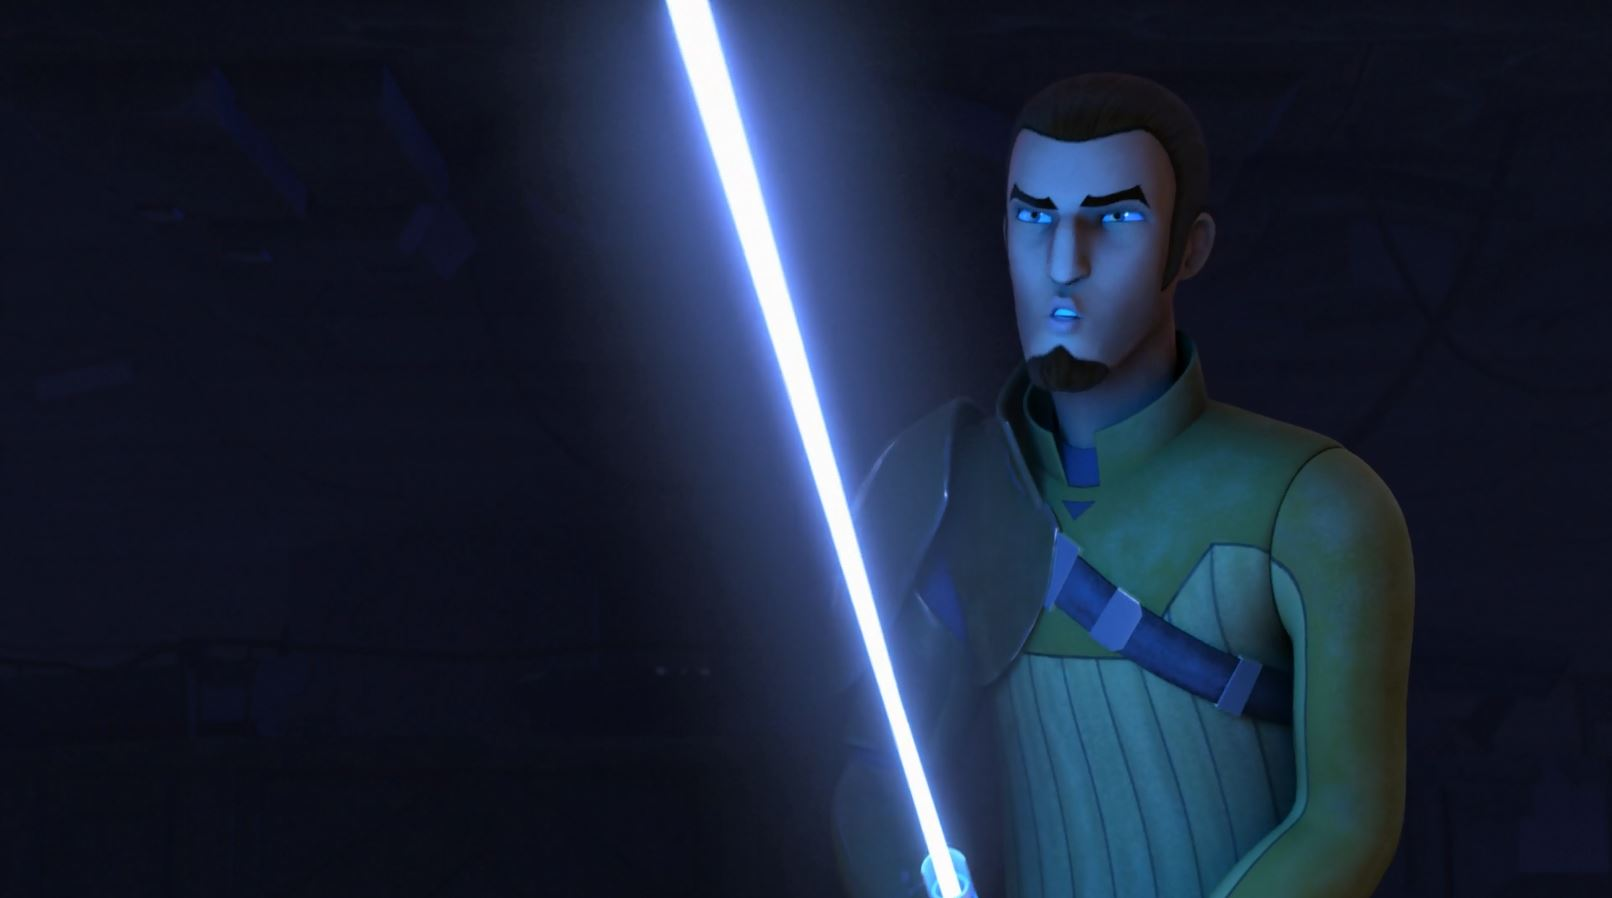 Kanan Jarrus. Star Wars Rebels Gathering Forces Review